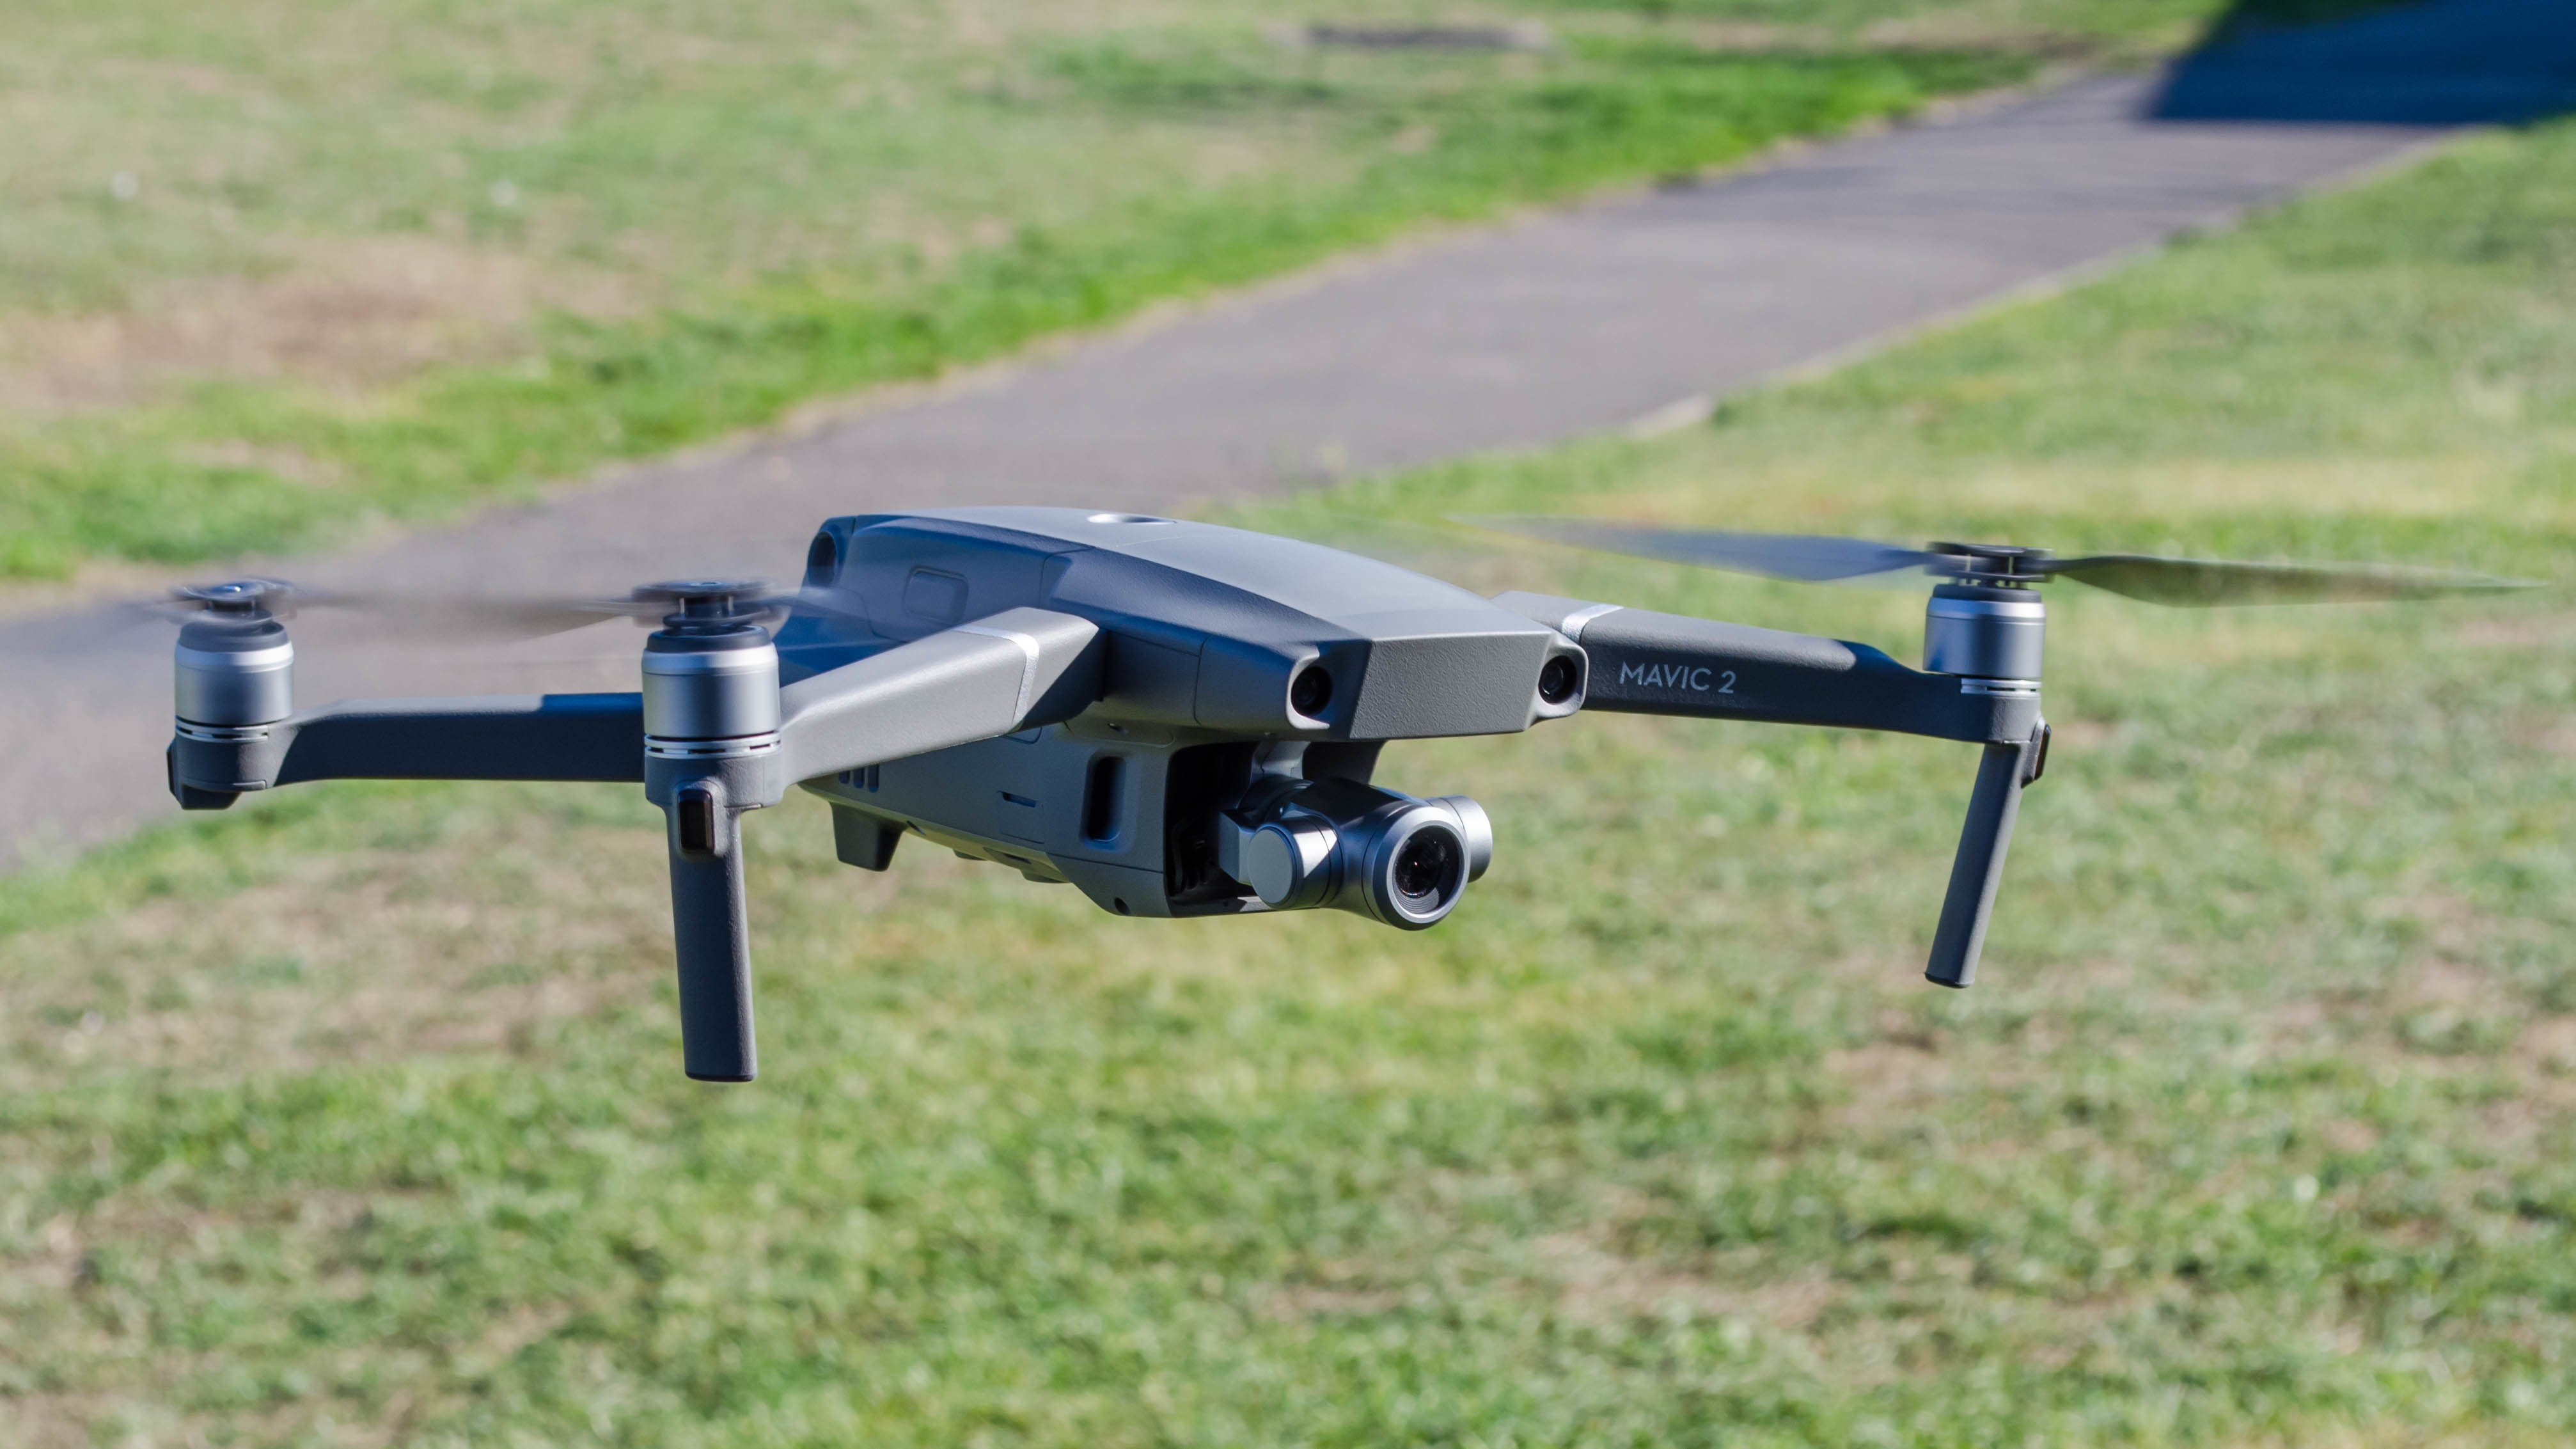 DJI Mavic 2 review: Quieter, faster, and with optical zoom